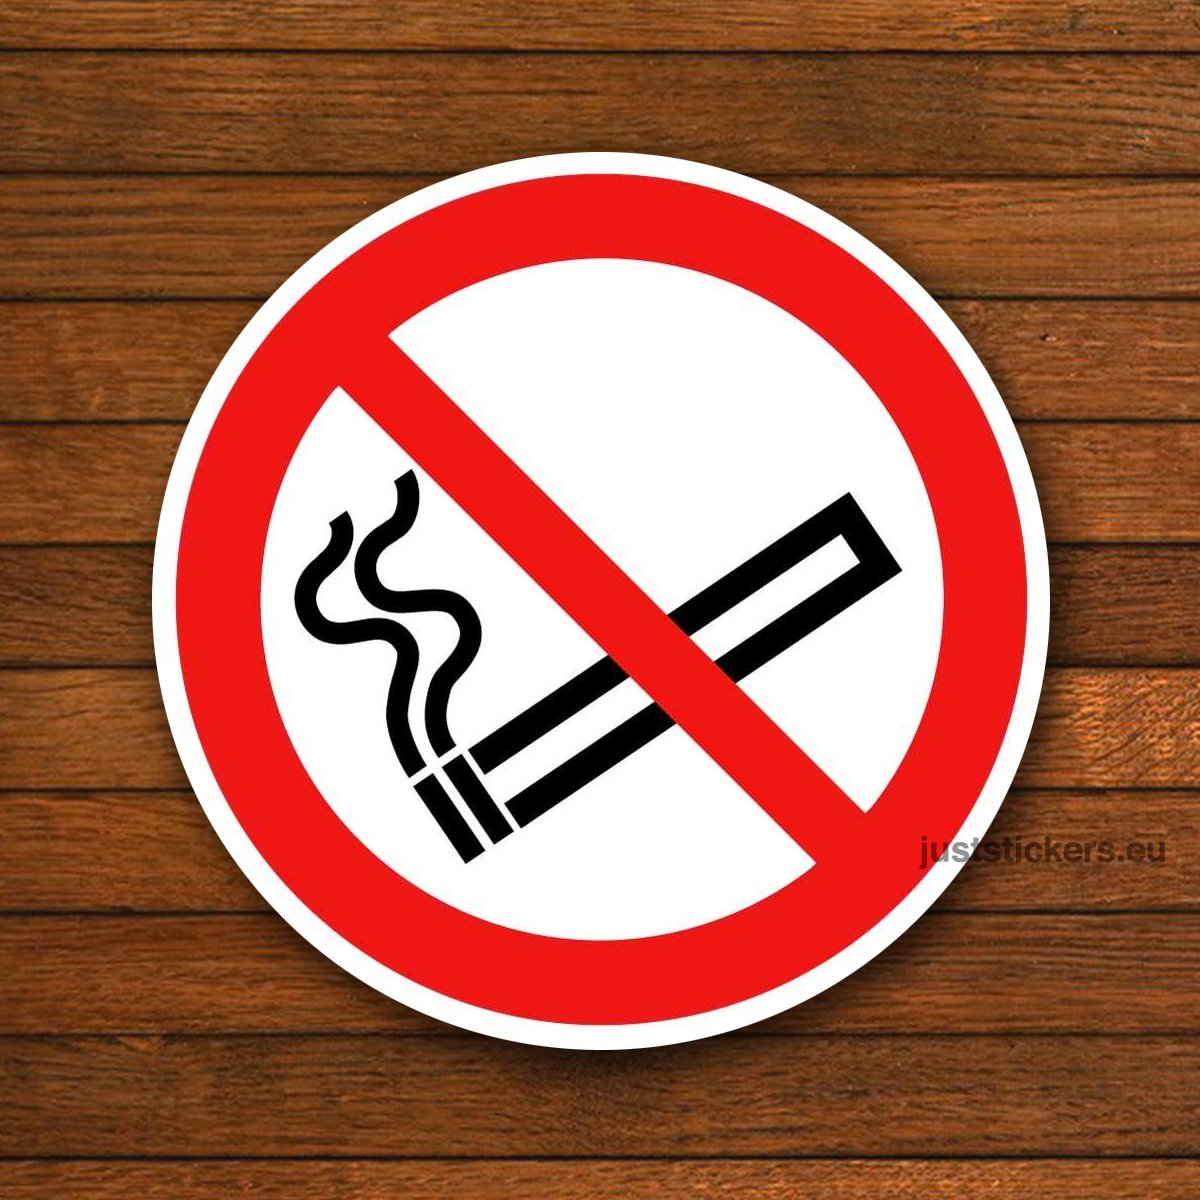 2 x No Smoking Signs (75mm) Stickers Decals self adhesive white vinyl car taxi bus dashboard JustStickers®